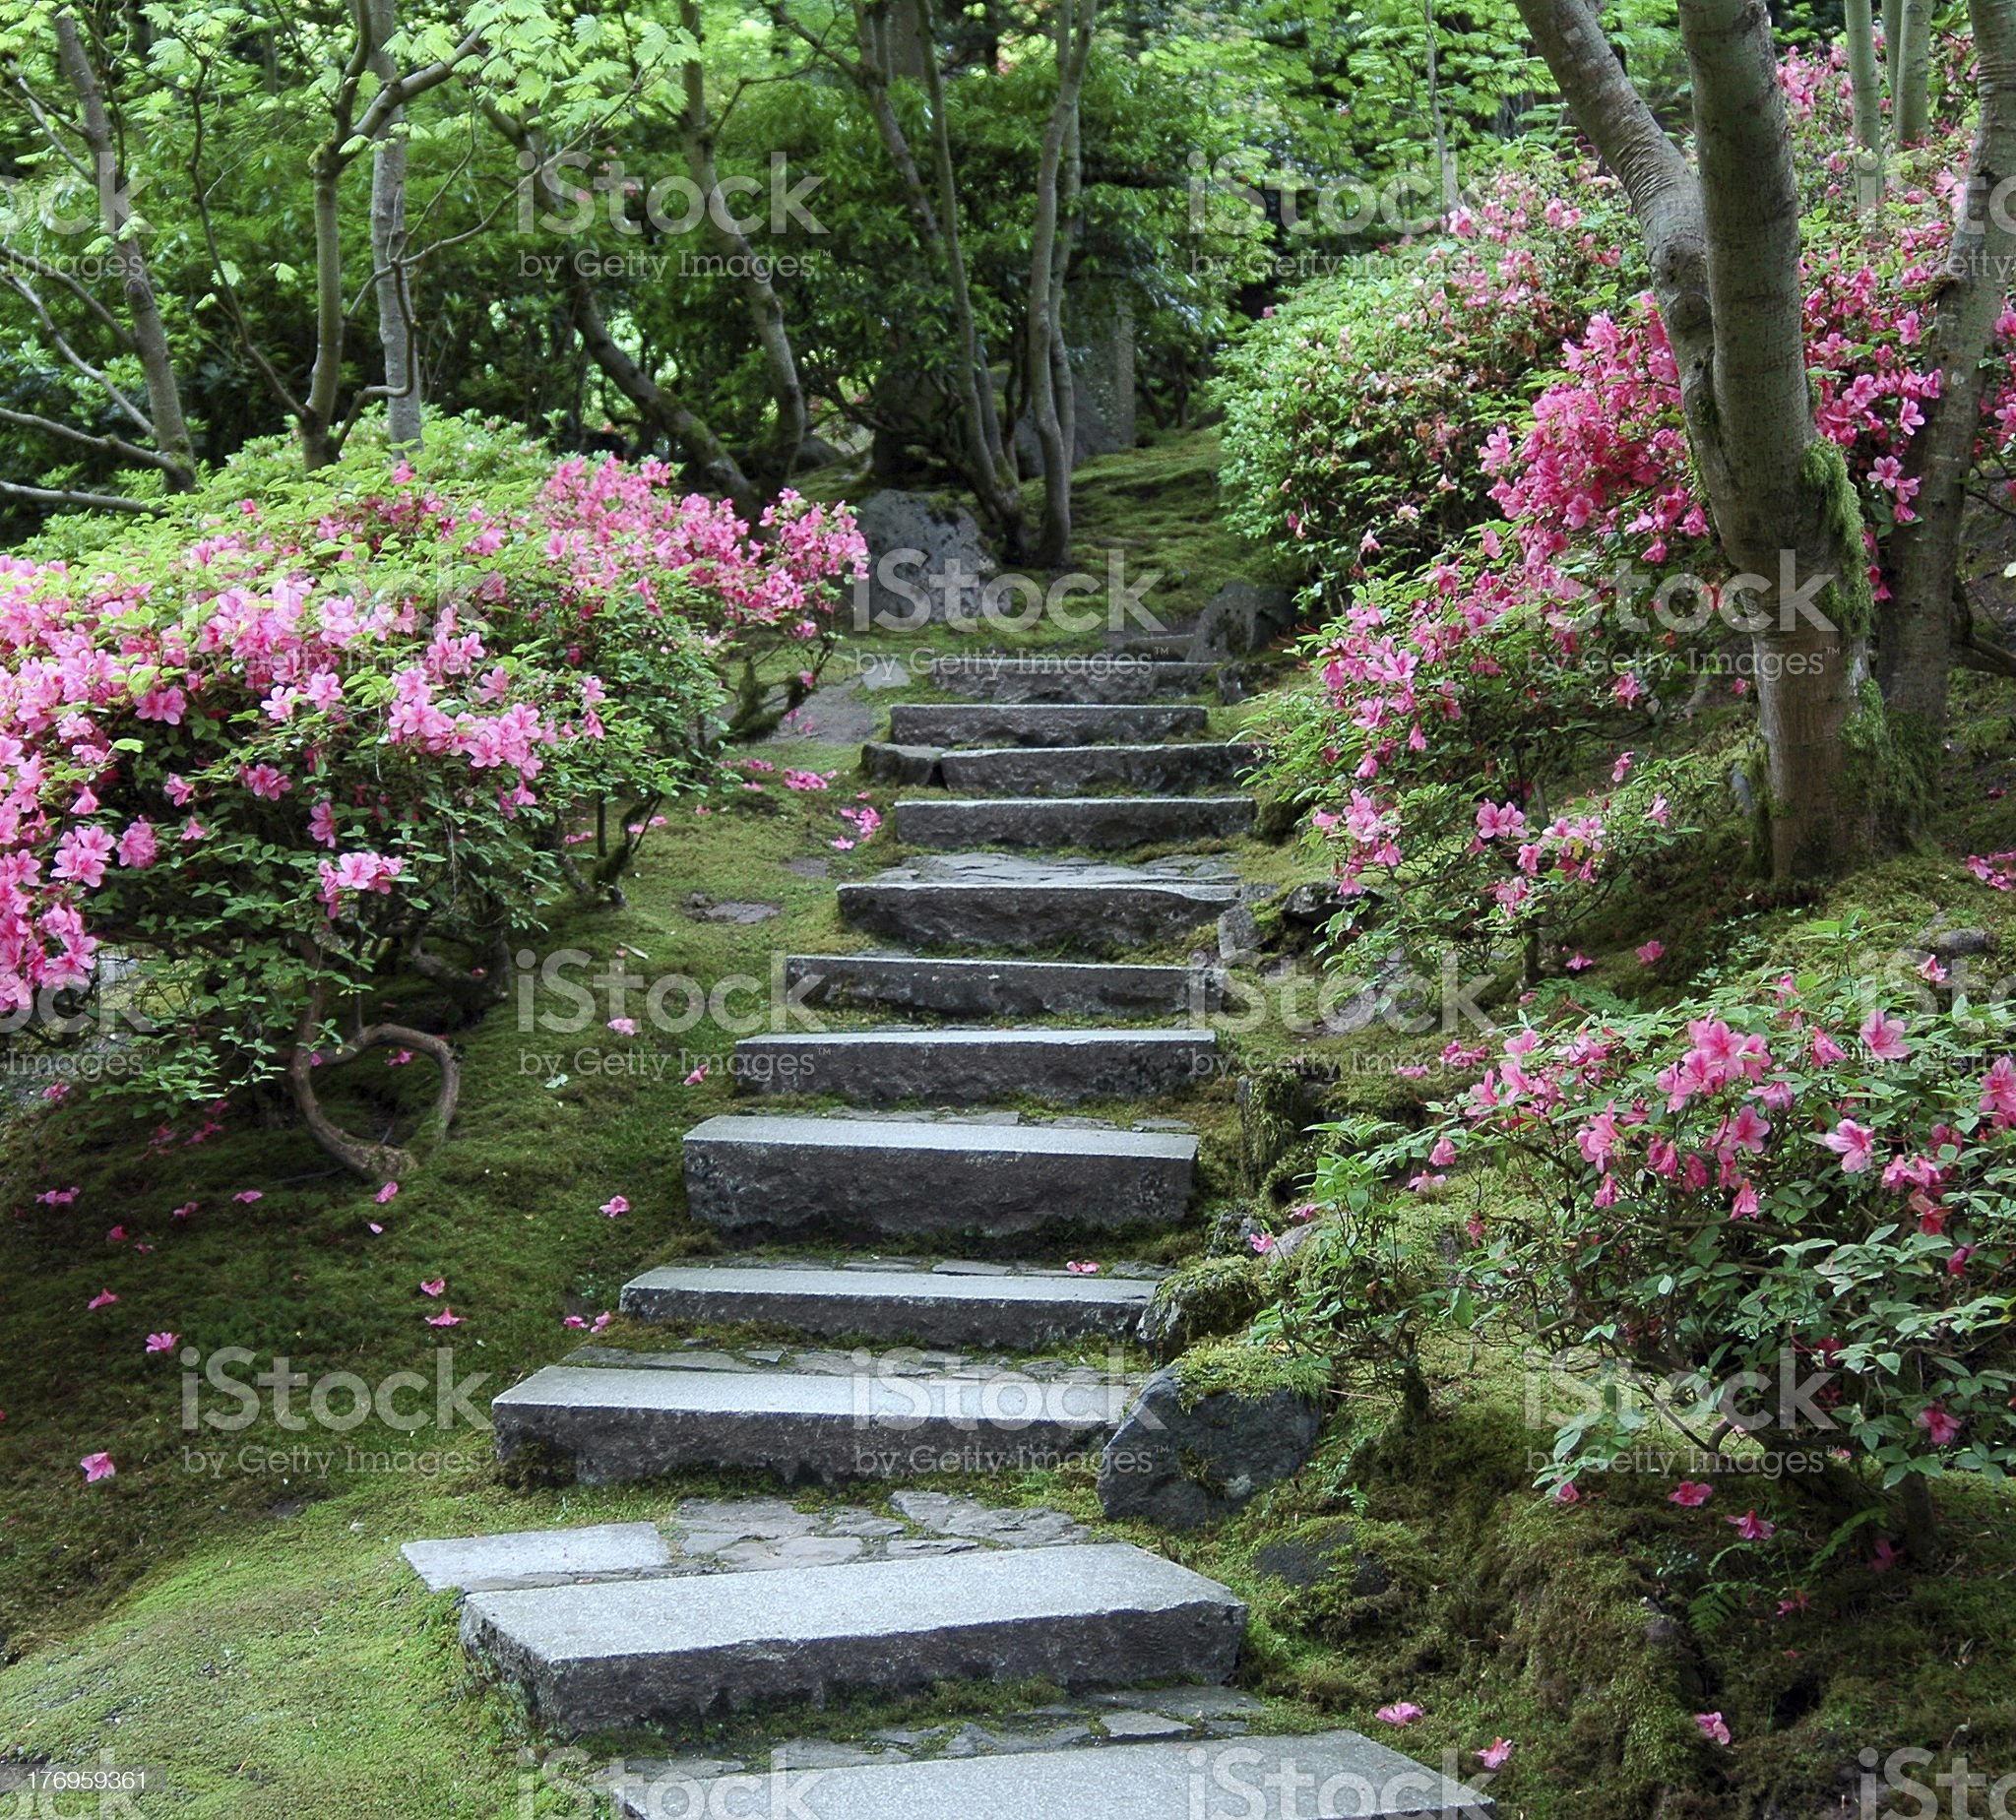 Stairway through a Japanese garden in bloom royalty-free stock photo